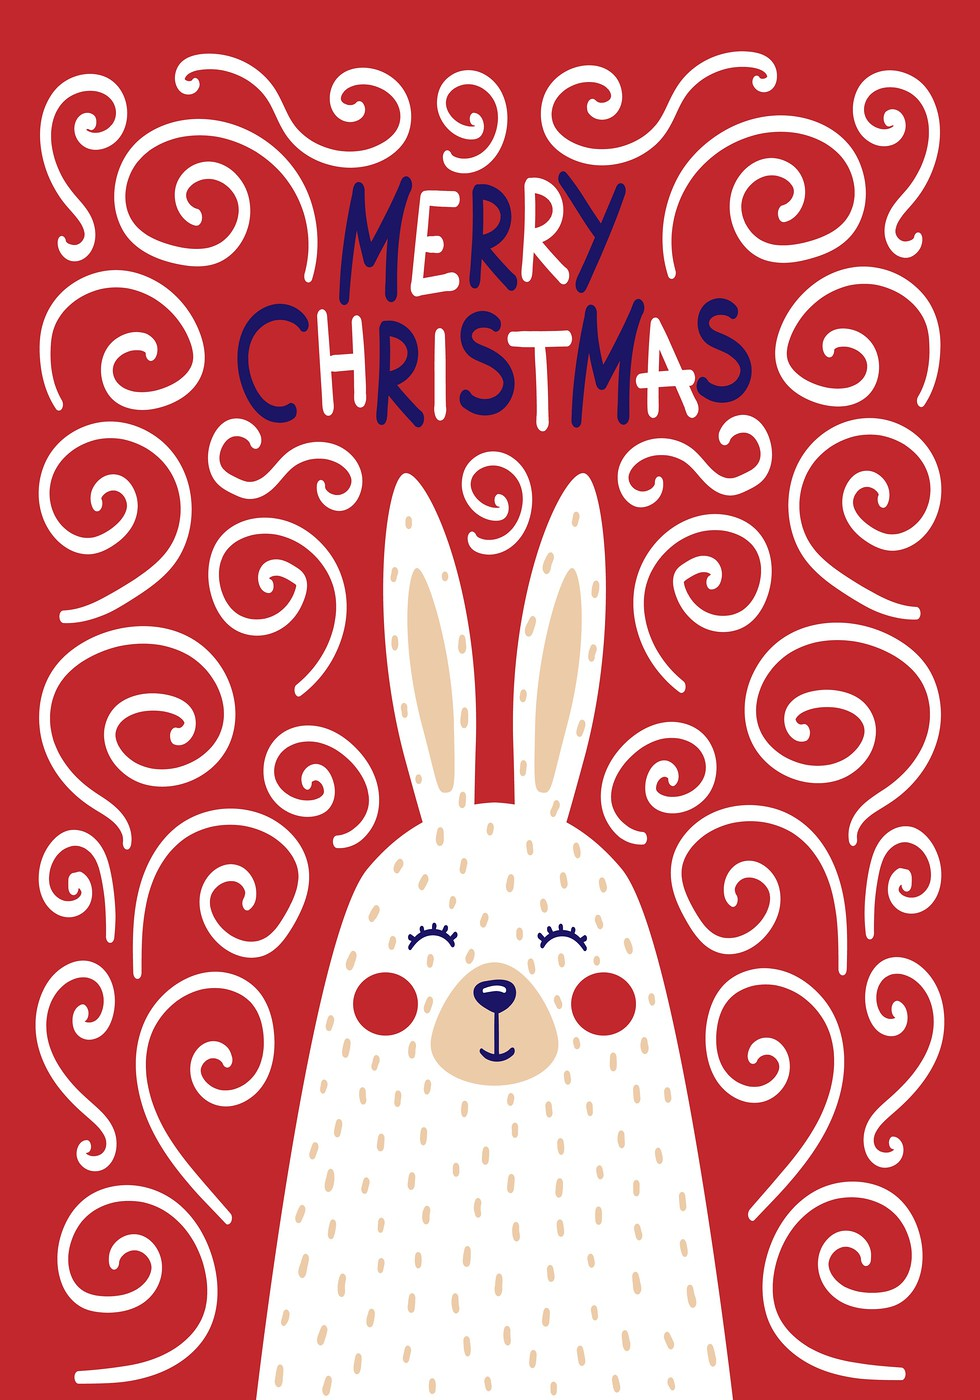 Cute Christmas cards with a picture of a rabbit in a Scandinavian style